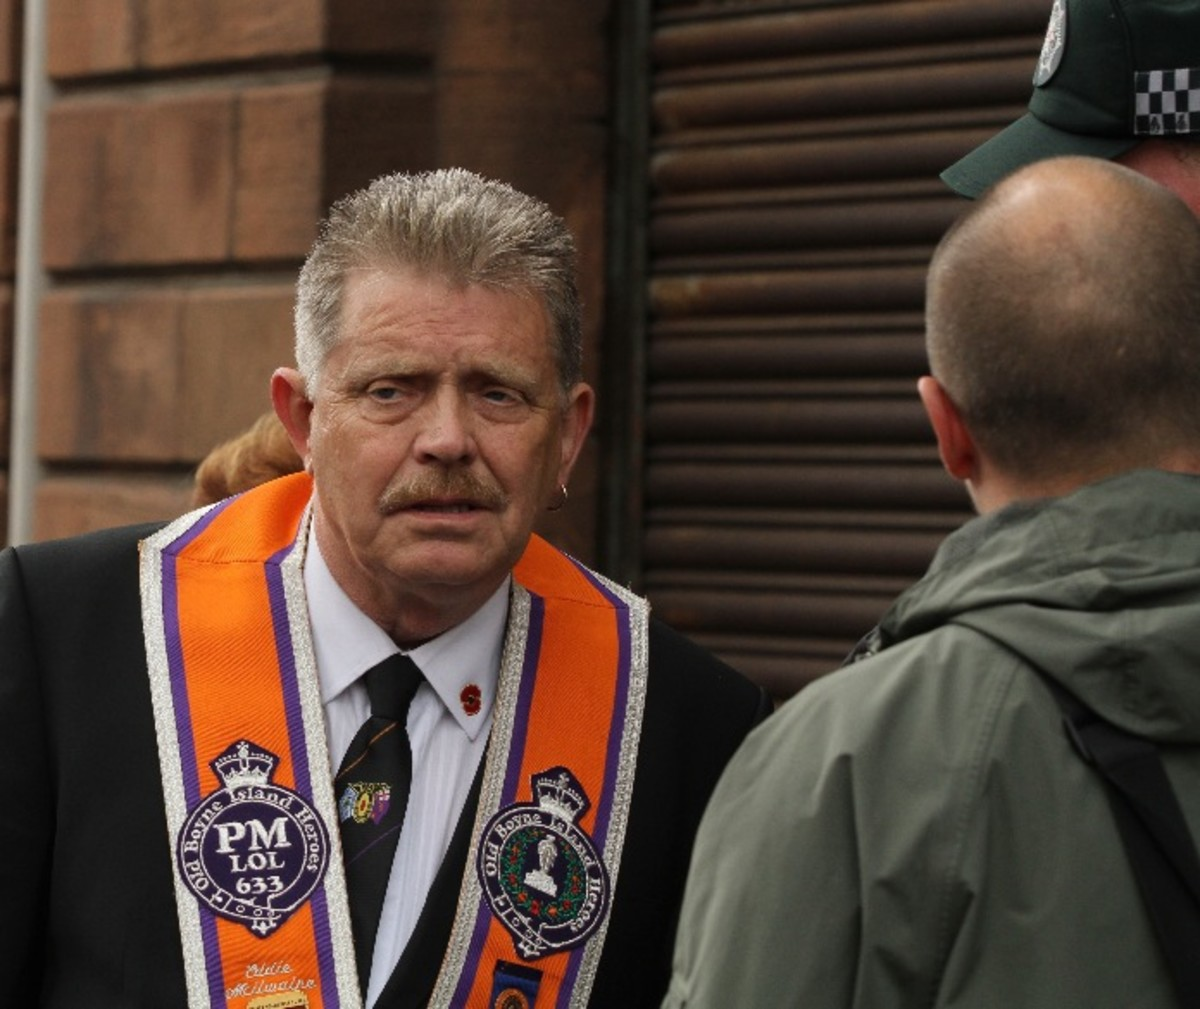 Eddie McIlwaine, a key player in the Shankill Butchers gang, at a recent Orange Order march. With 19 murders between them, the Shankill Butchers were the most prolific gang of serial killers in UK or Irish history.